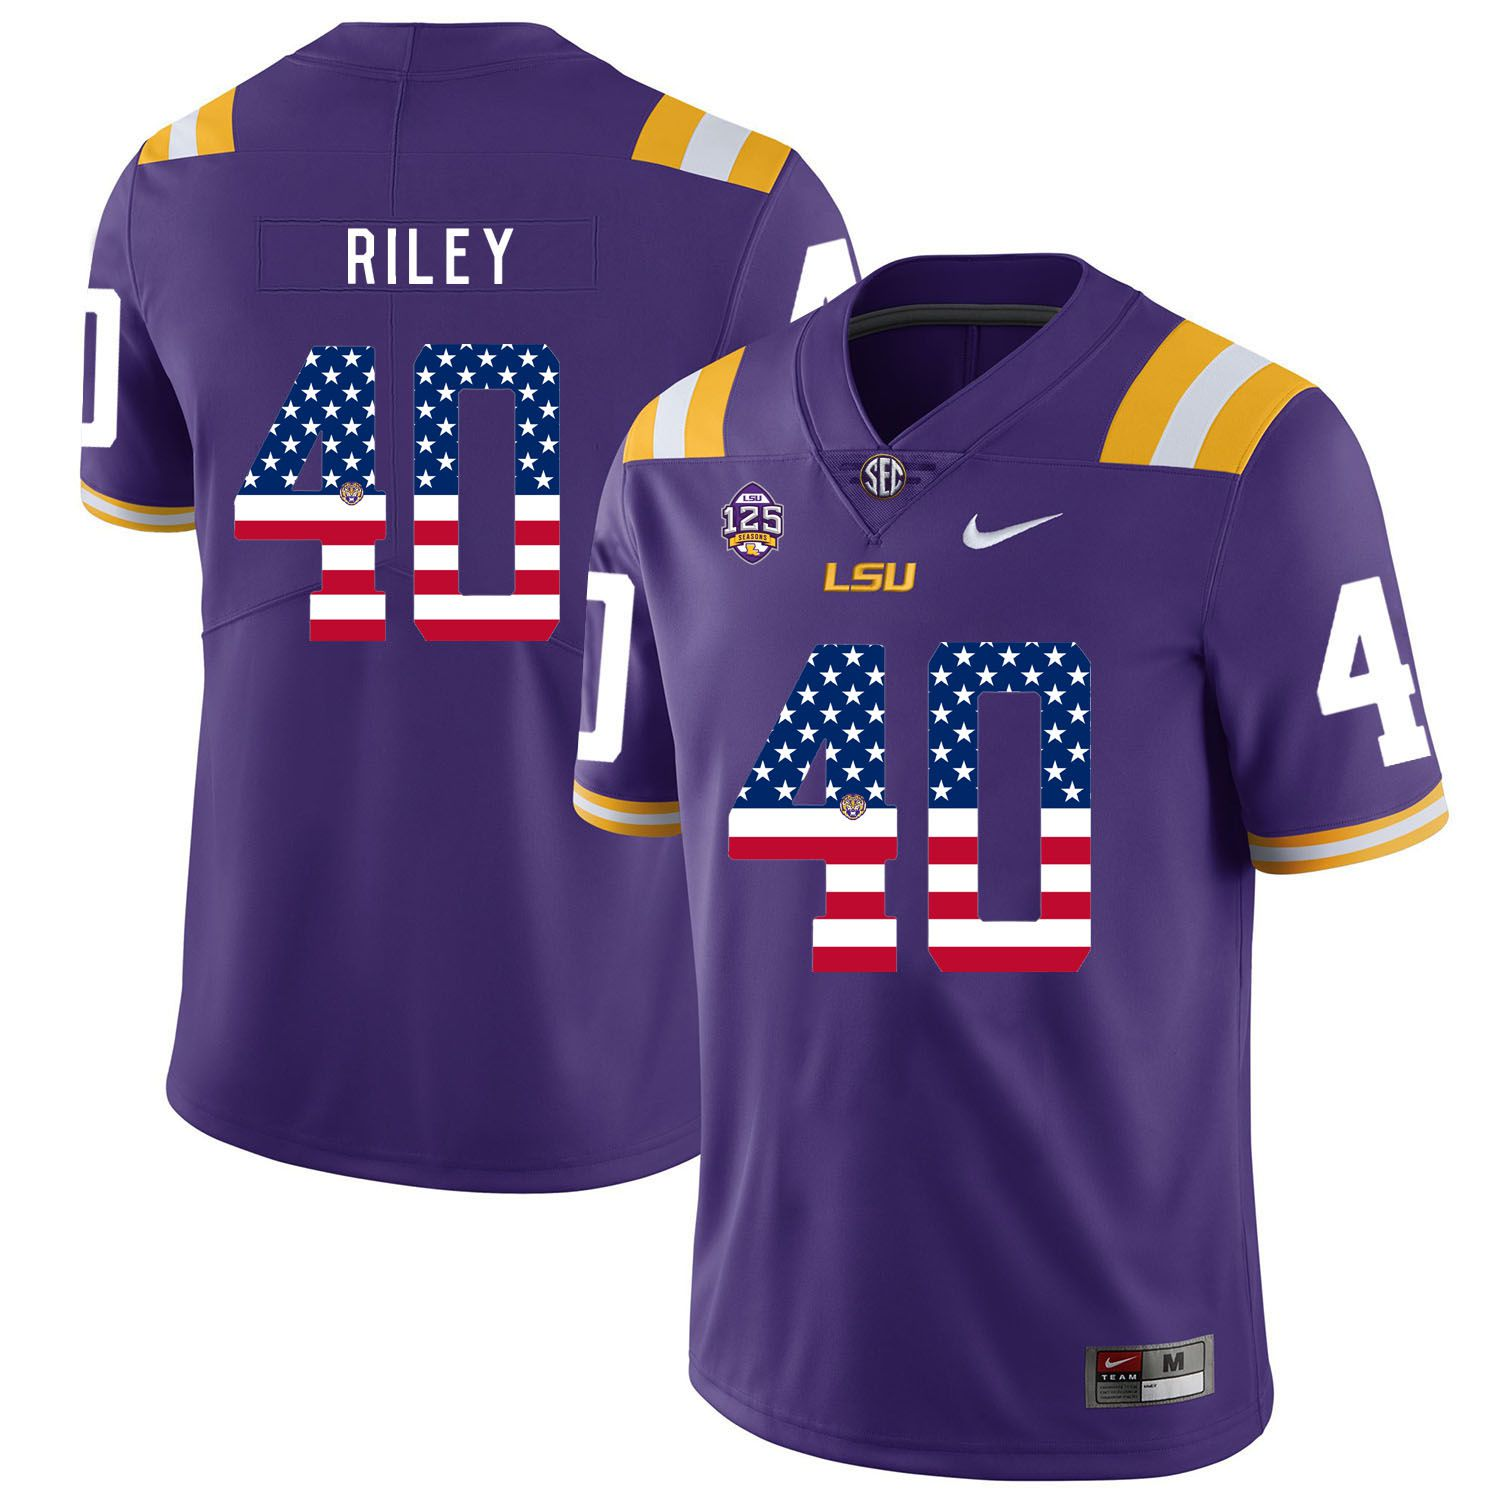 Men LSU Tigers 40 Riley Purple Flag Customized NCAA Jerseys